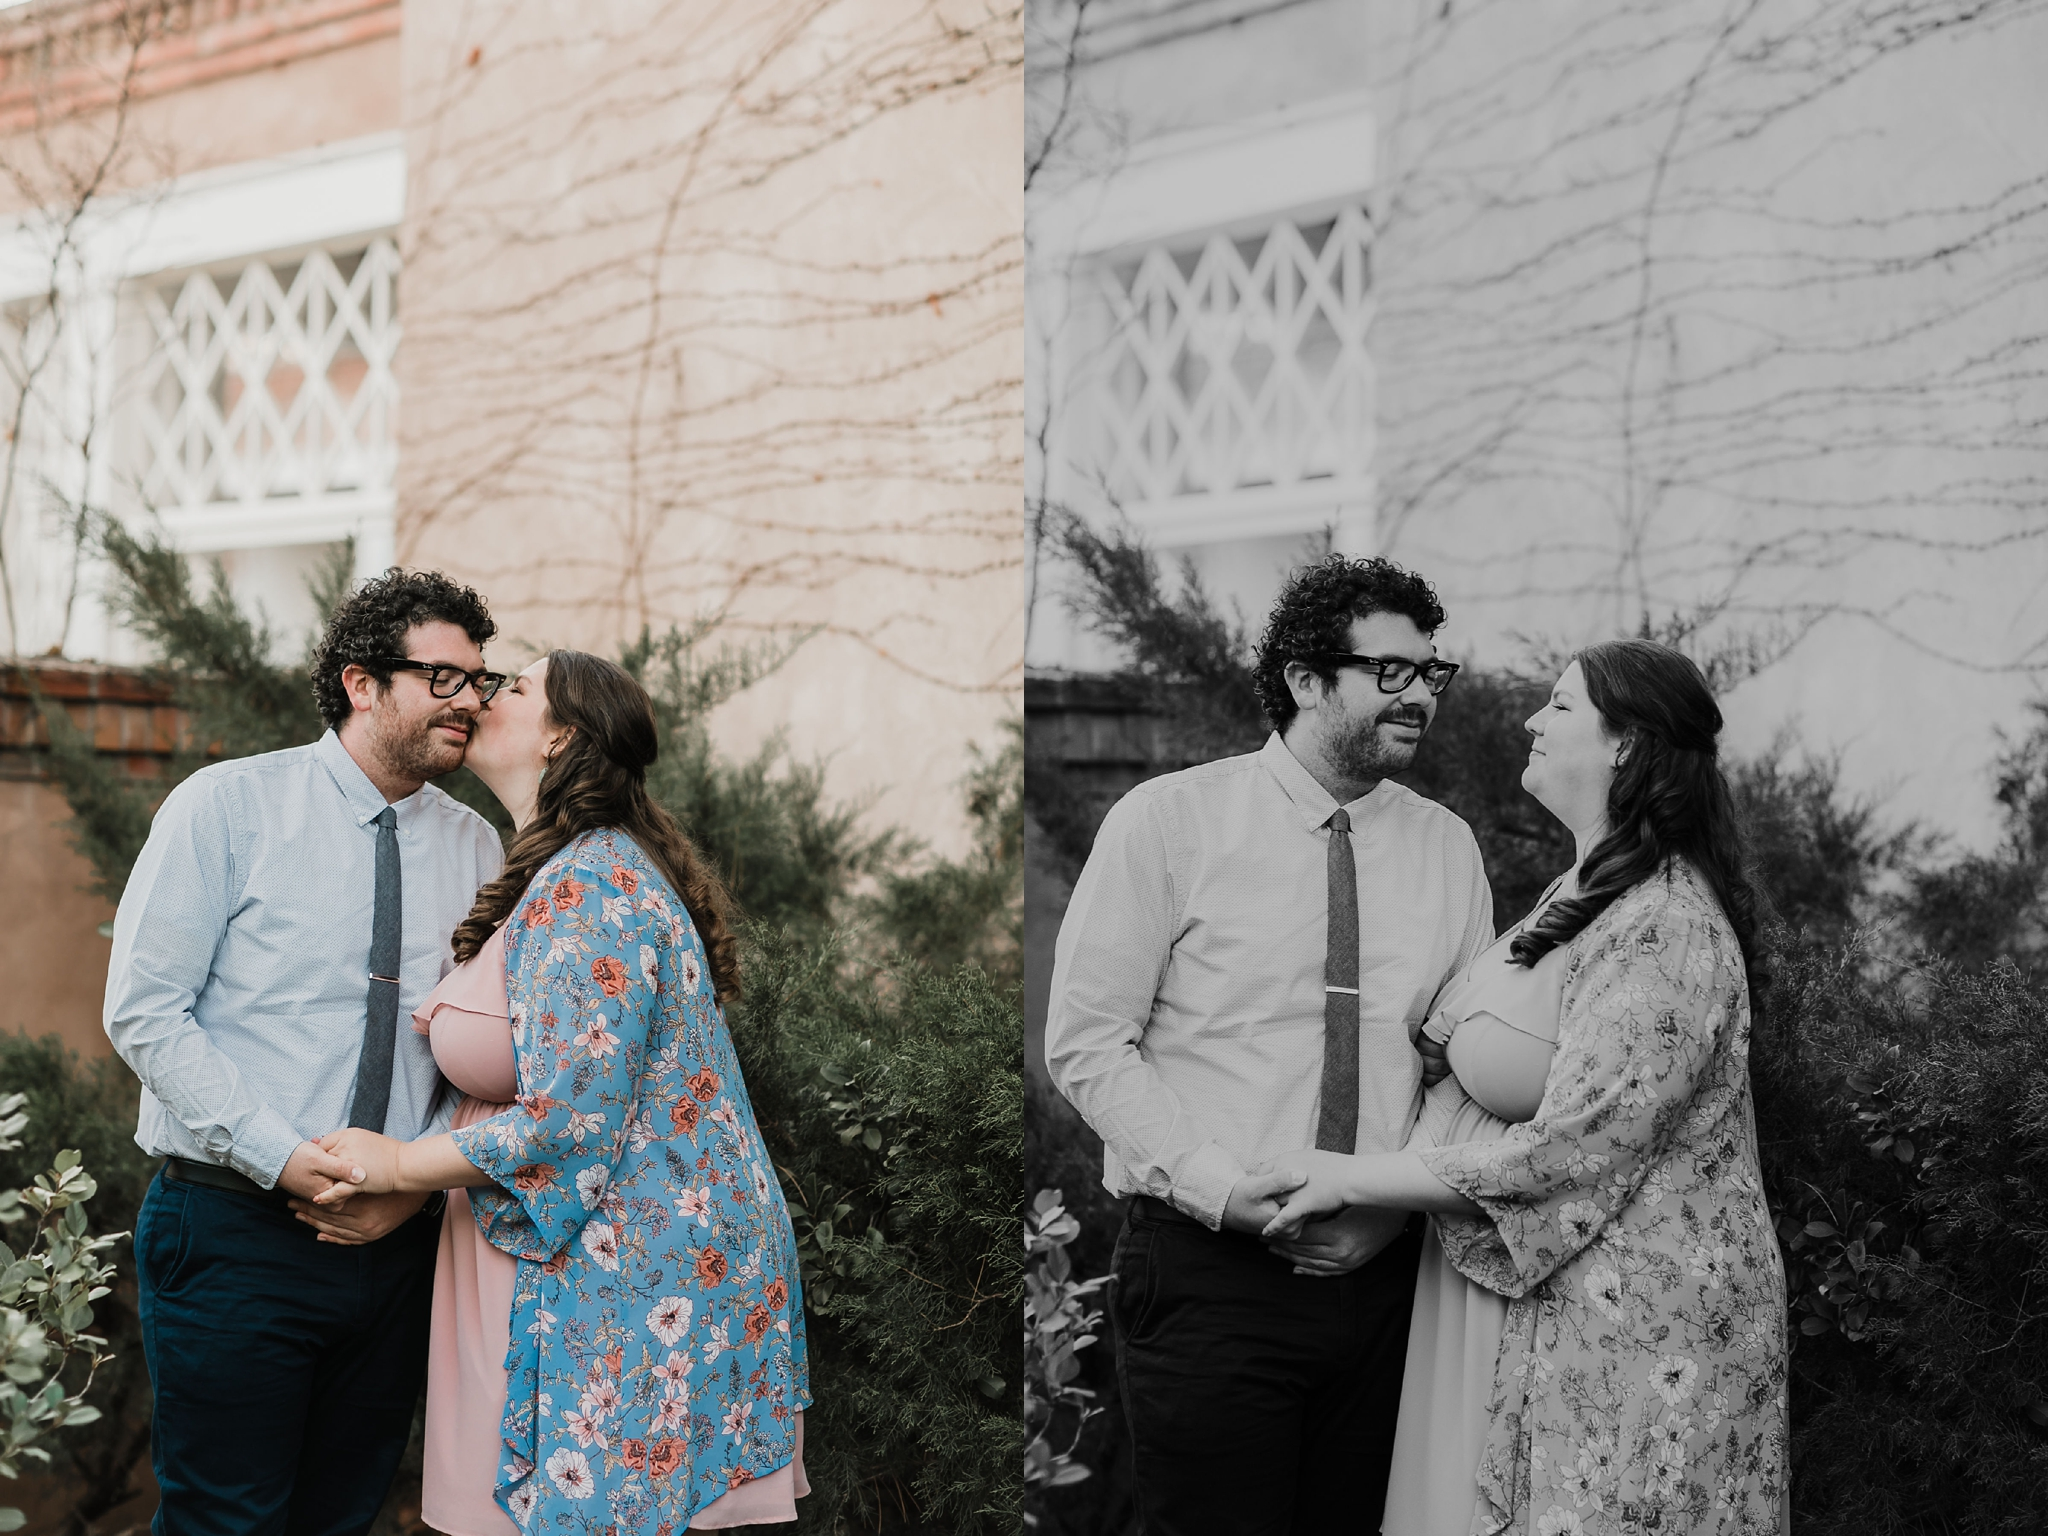 Alicia+lucia+photography+-+albuquerque+wedding+photographer+-+santa+fe+wedding+photography+-+new+mexico+wedding+photographer+-+new+mexico+engagement+-+los+poblanos+engagement+-+spring+engagement_0018.jpg